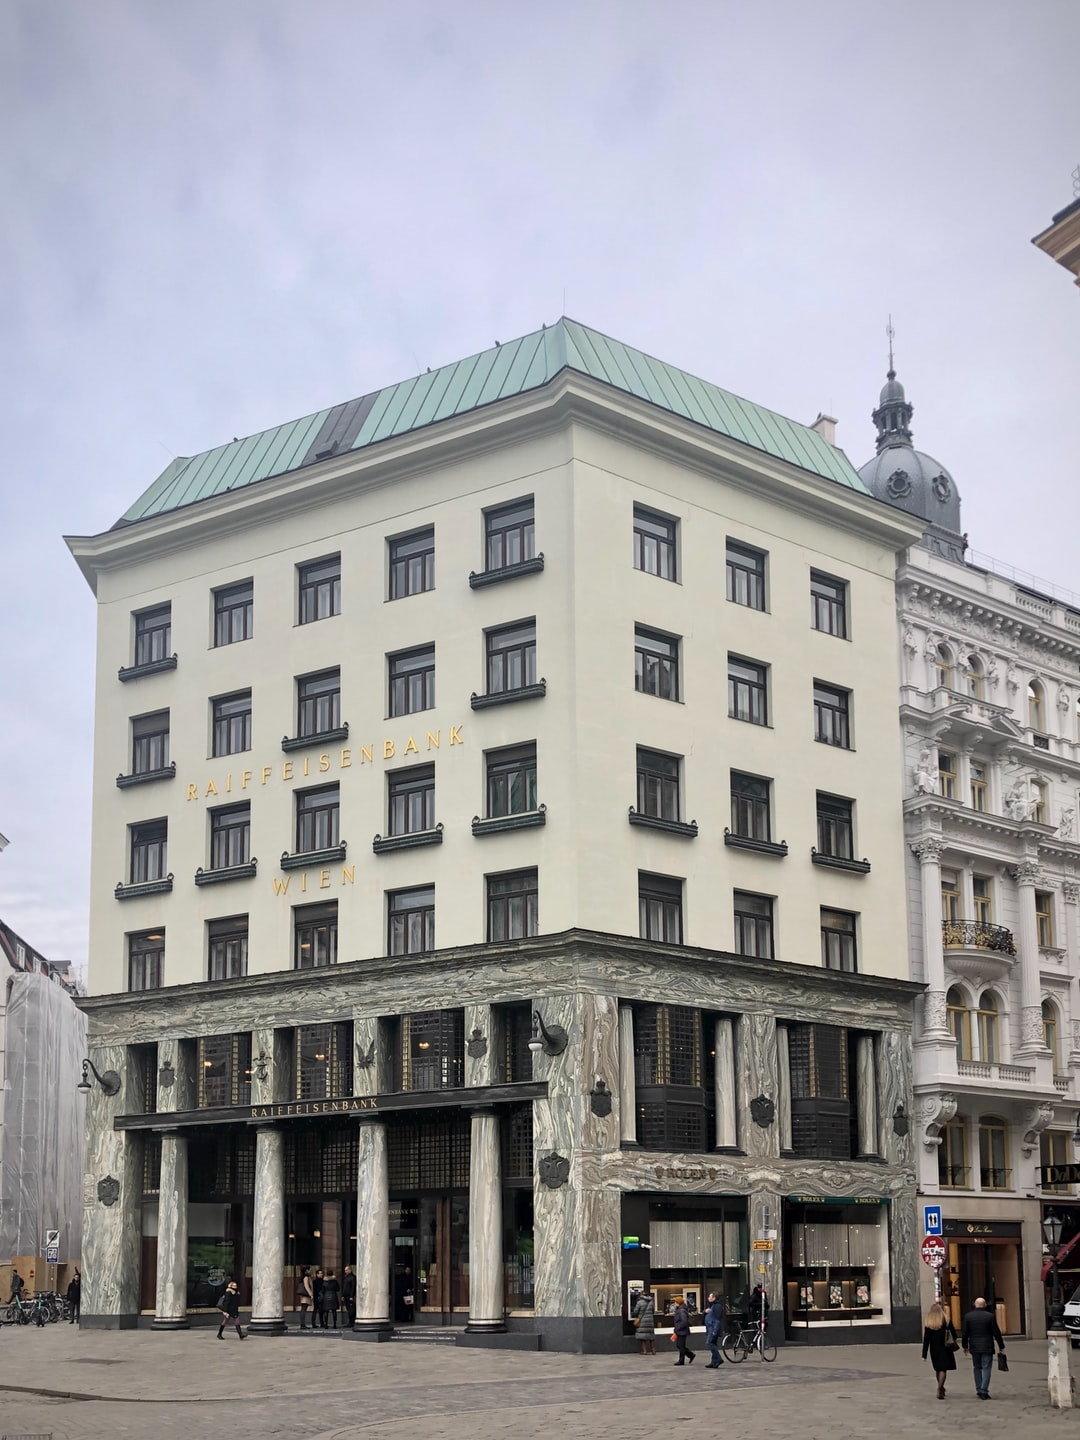 """The famous Looshaus of 1912 which marks a new era in architecture, Modernism, leaving behind Historism but as well the Jugendstil (Art Deco) of Secession. Its sober style lead to harsh criticism: the flower baskets of the upper windows had to be added as decorative element. It was called """"the house without eyebrows"""".  Now used as a bank and for exhibitions. March 09, 2020, 1000 AM - a very very sad day anyway."""